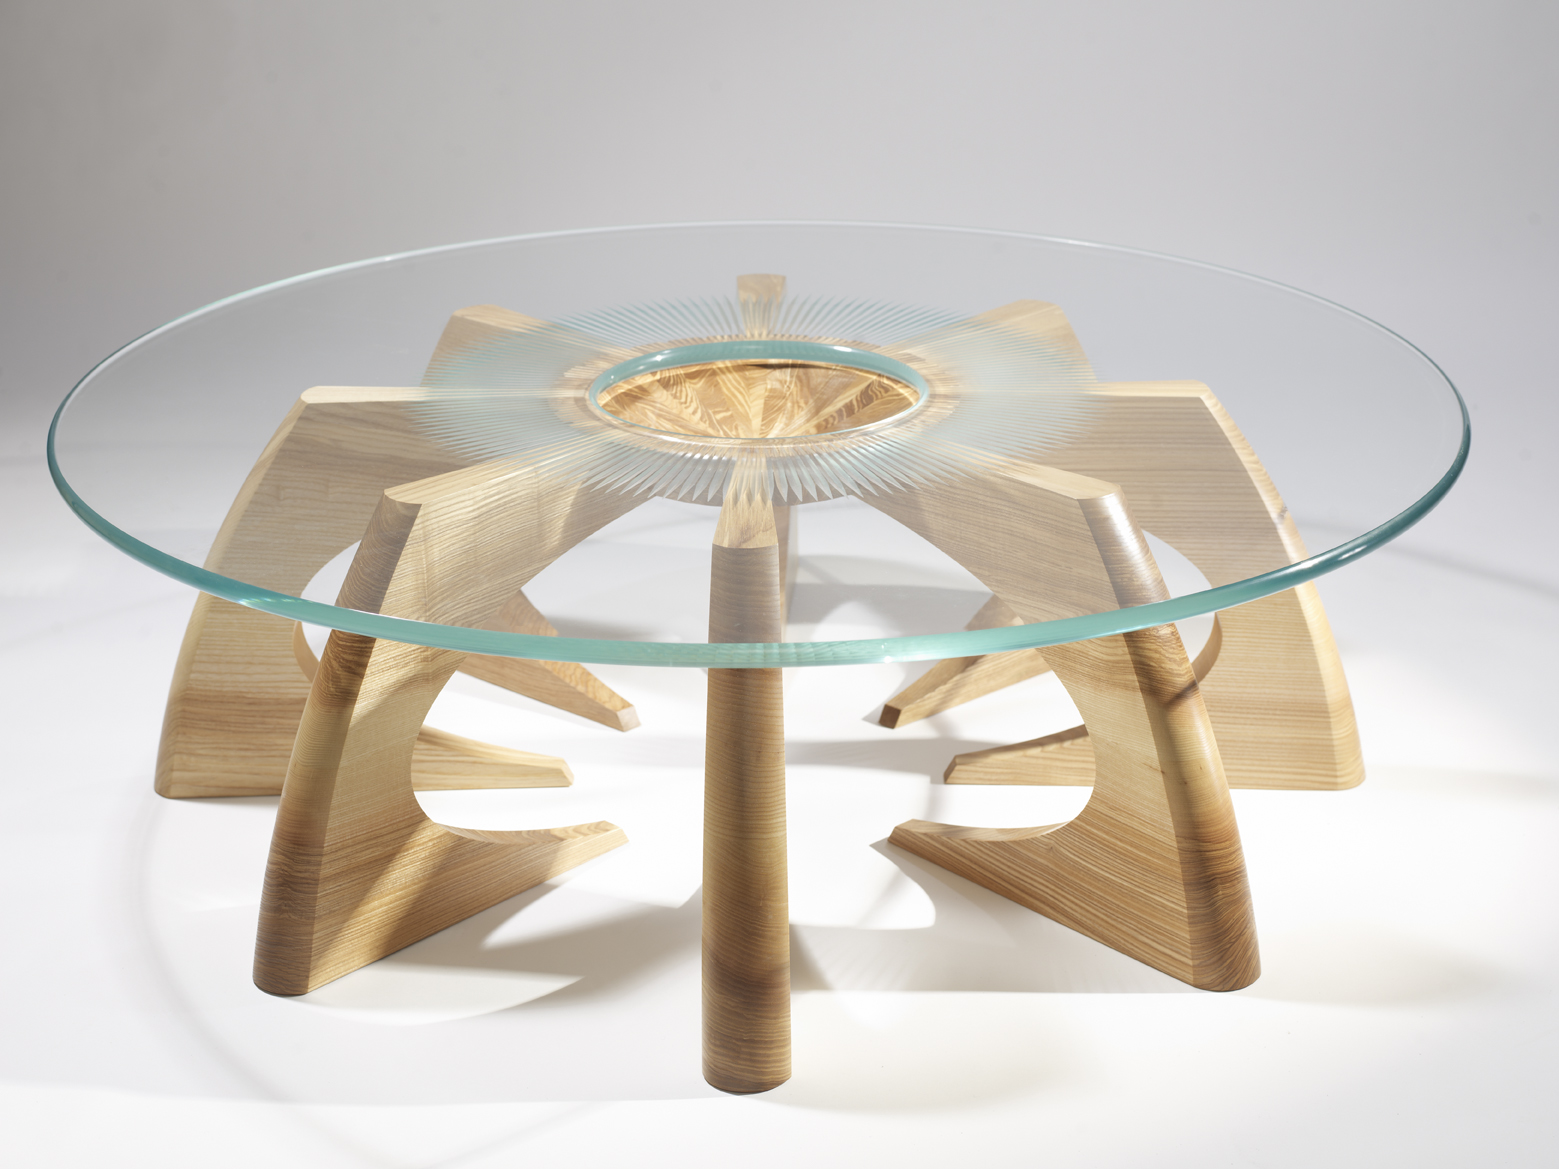 Interior house design a minimalist table but can produce for Design a table